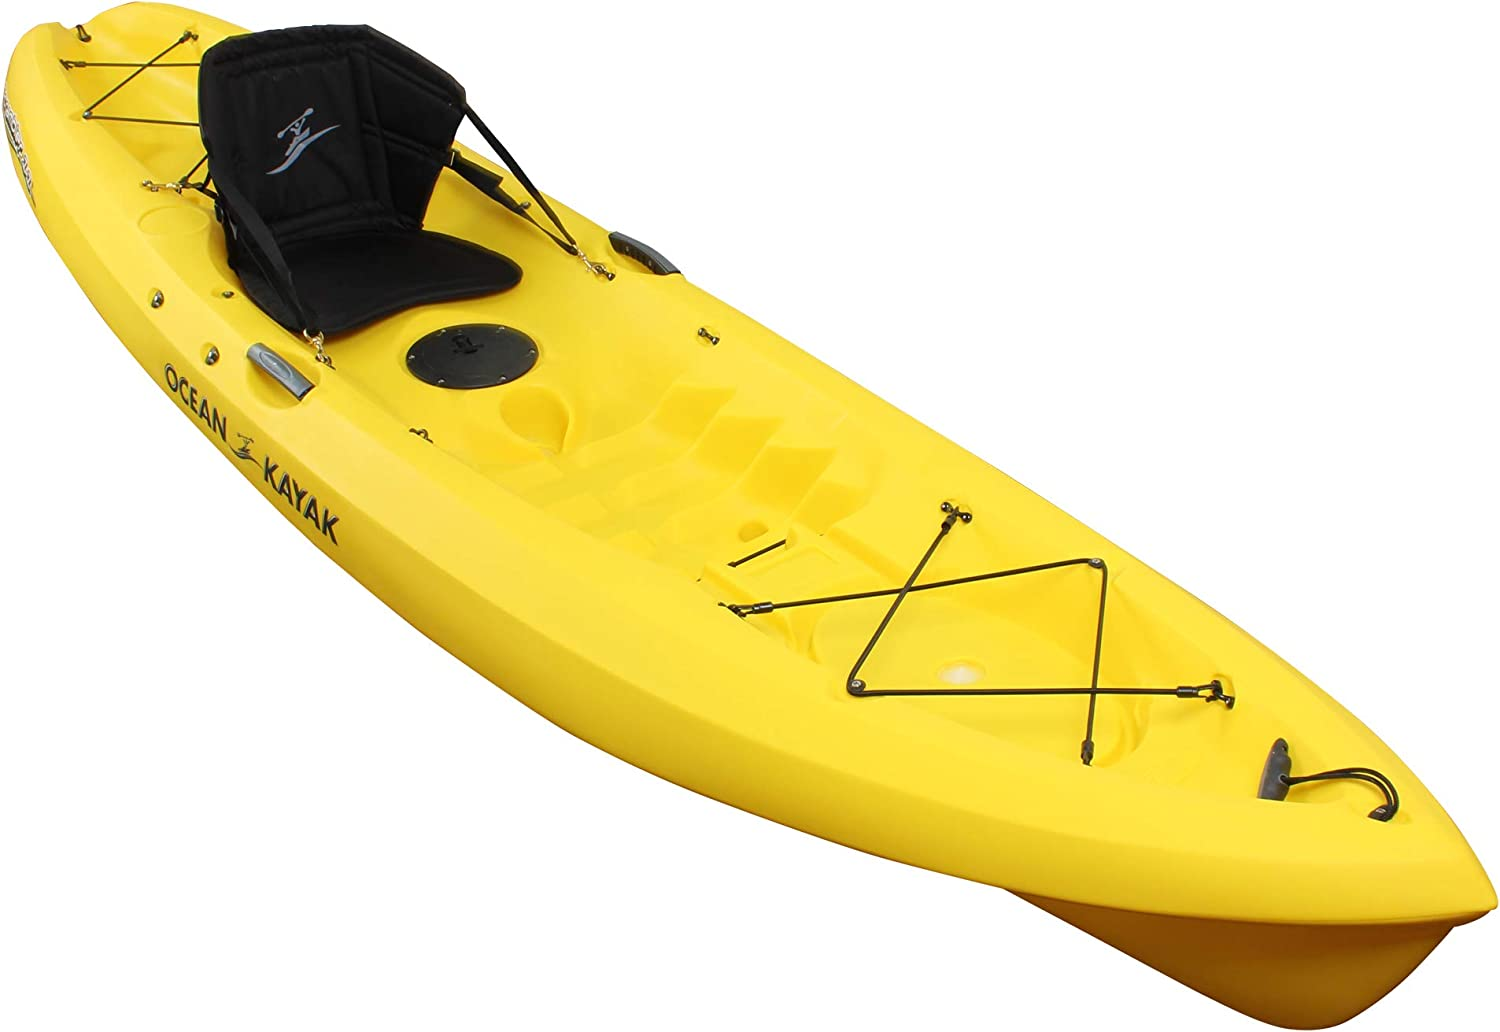 Introducing the Best Kayak for Beginners 2020